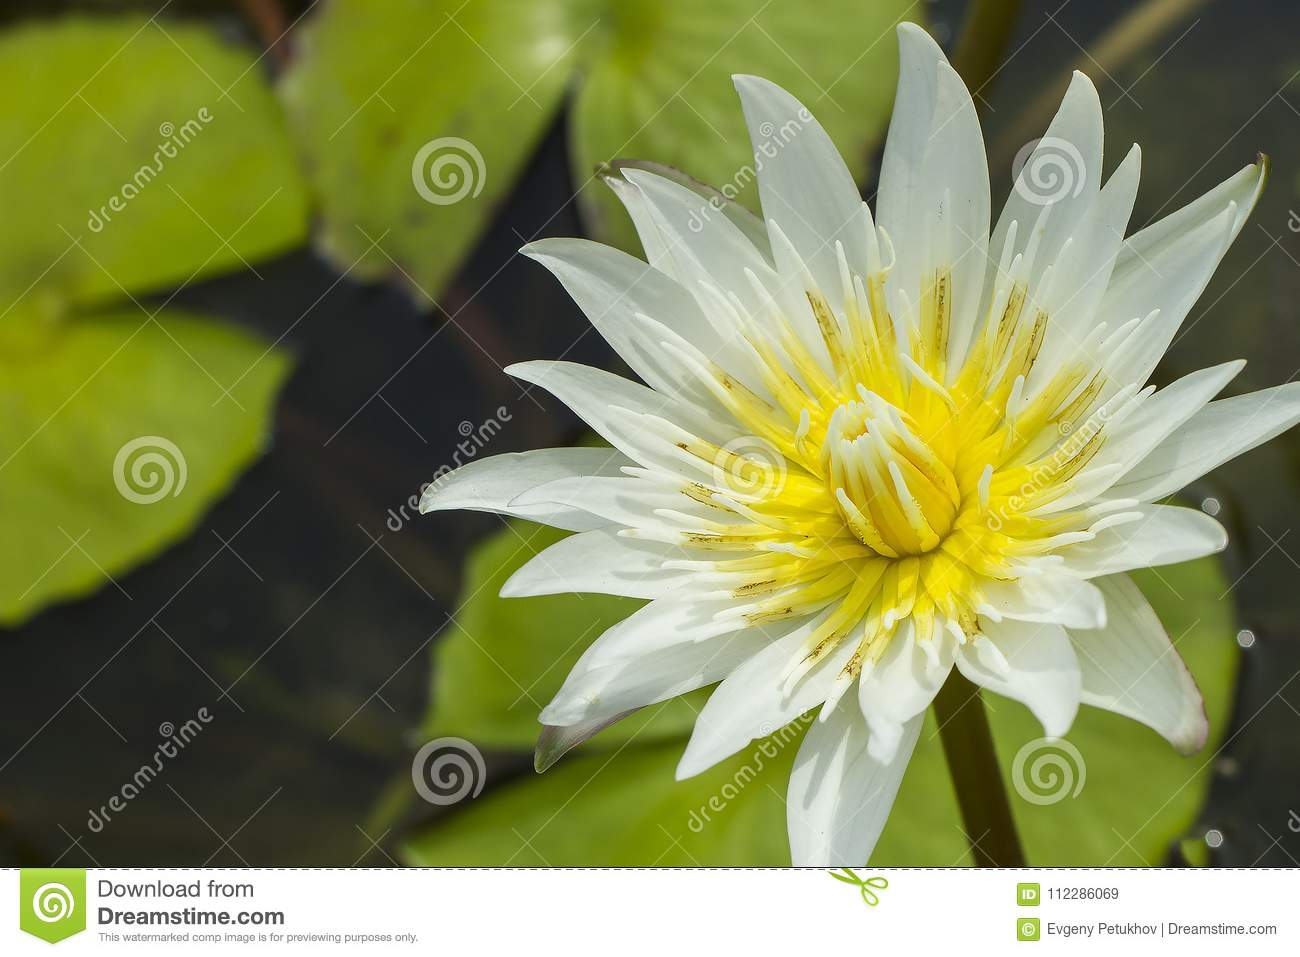 Elegant white lily flower lotus in water the lotus flower water elegant white lily flower lotus in water the lotus flower water lily is a national flower for india symbol in asian culture izmirmasajfo